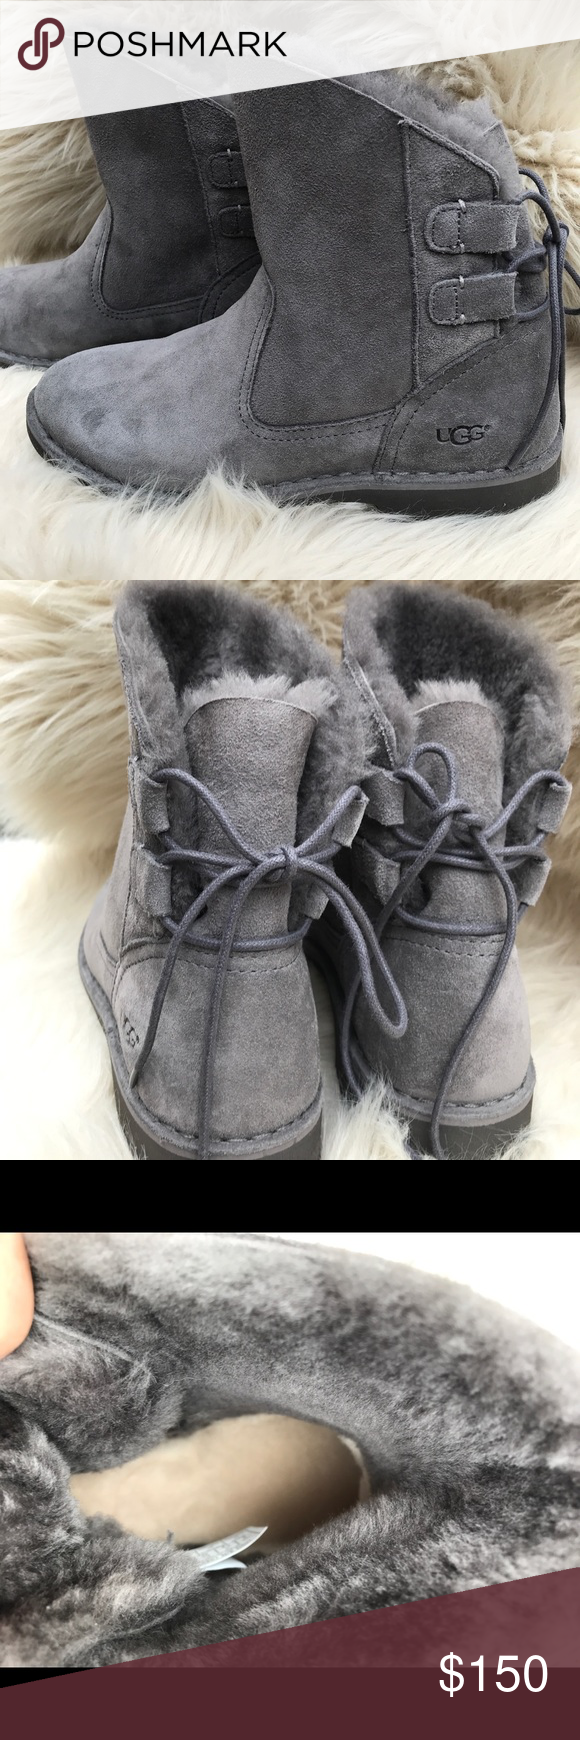 f0c5a1e698f NWOB UGG Naiyah suede, lace-back grey boots. NEW UGG boots. The ...